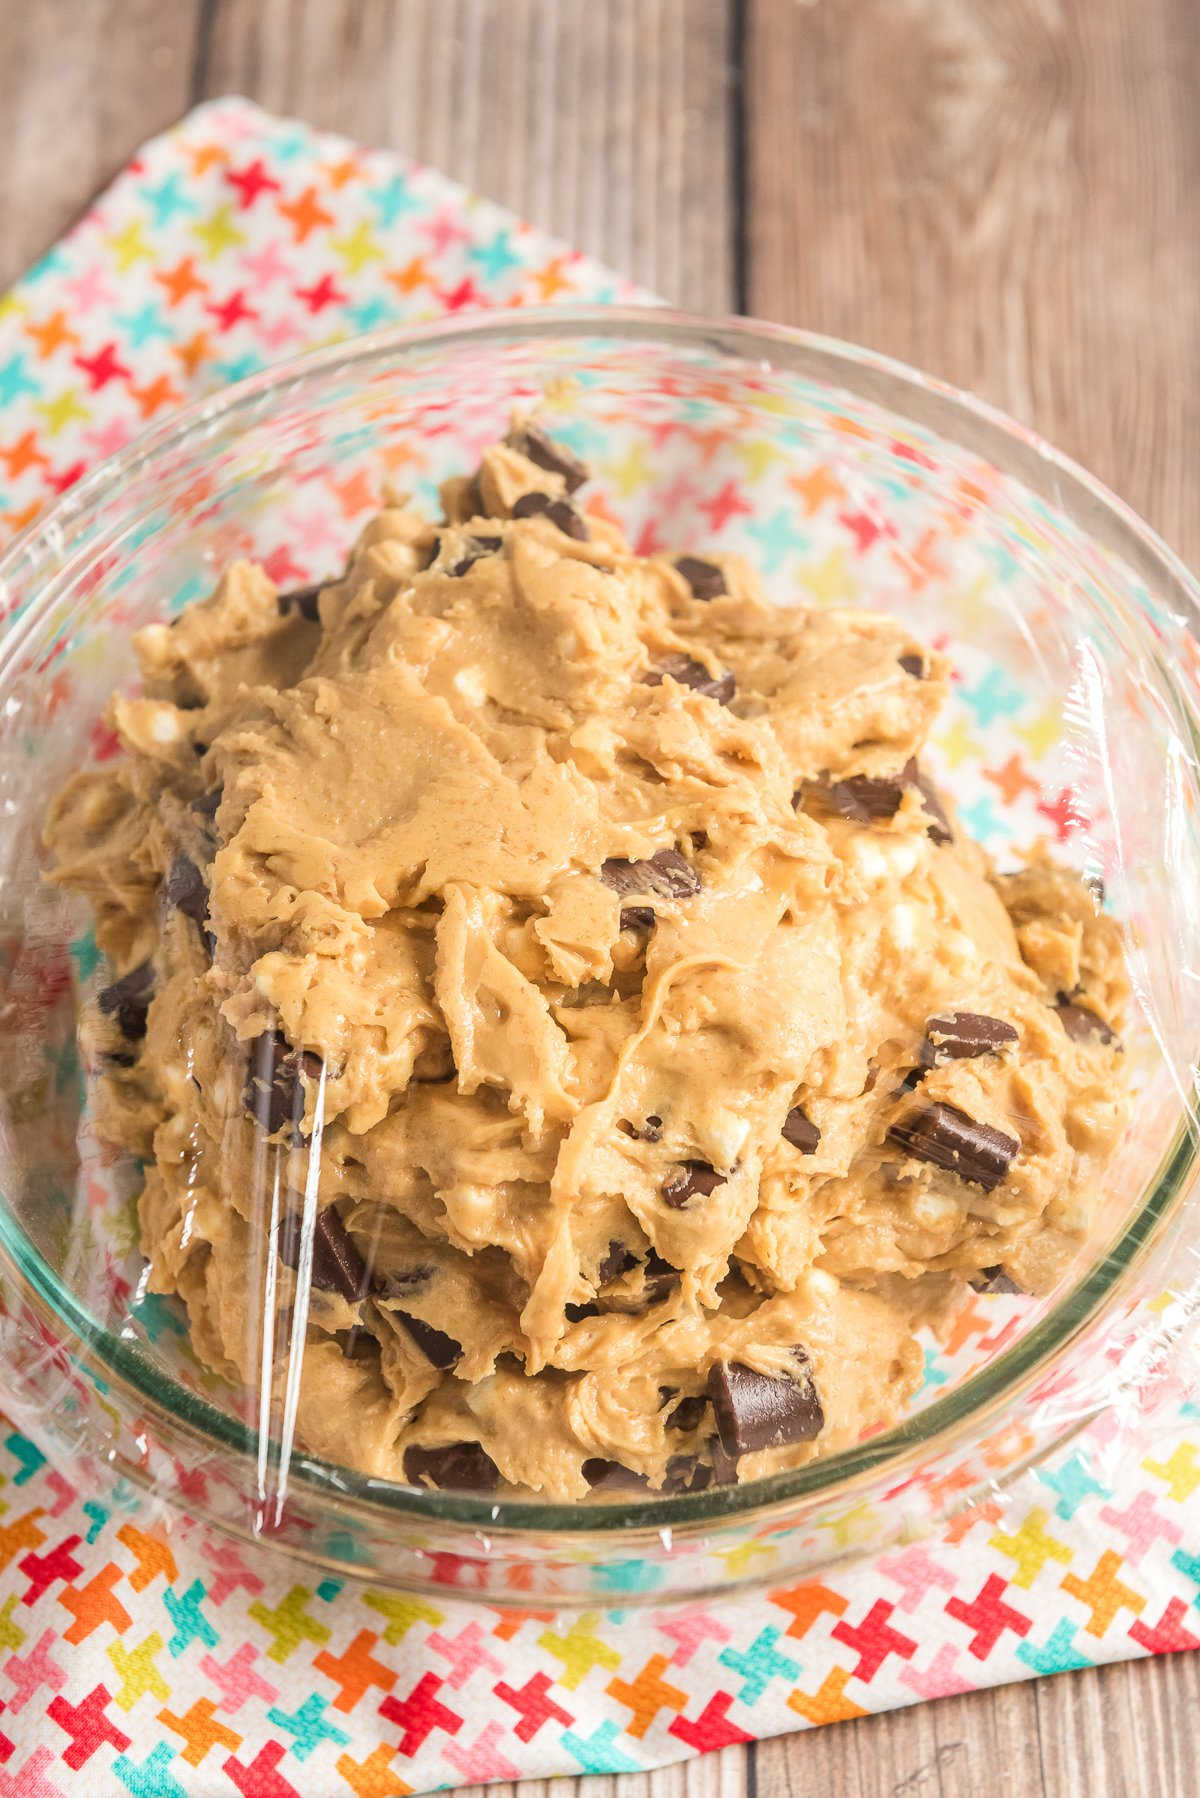 Cookie dough in a glass mixing bowl covered with plastic wrap.